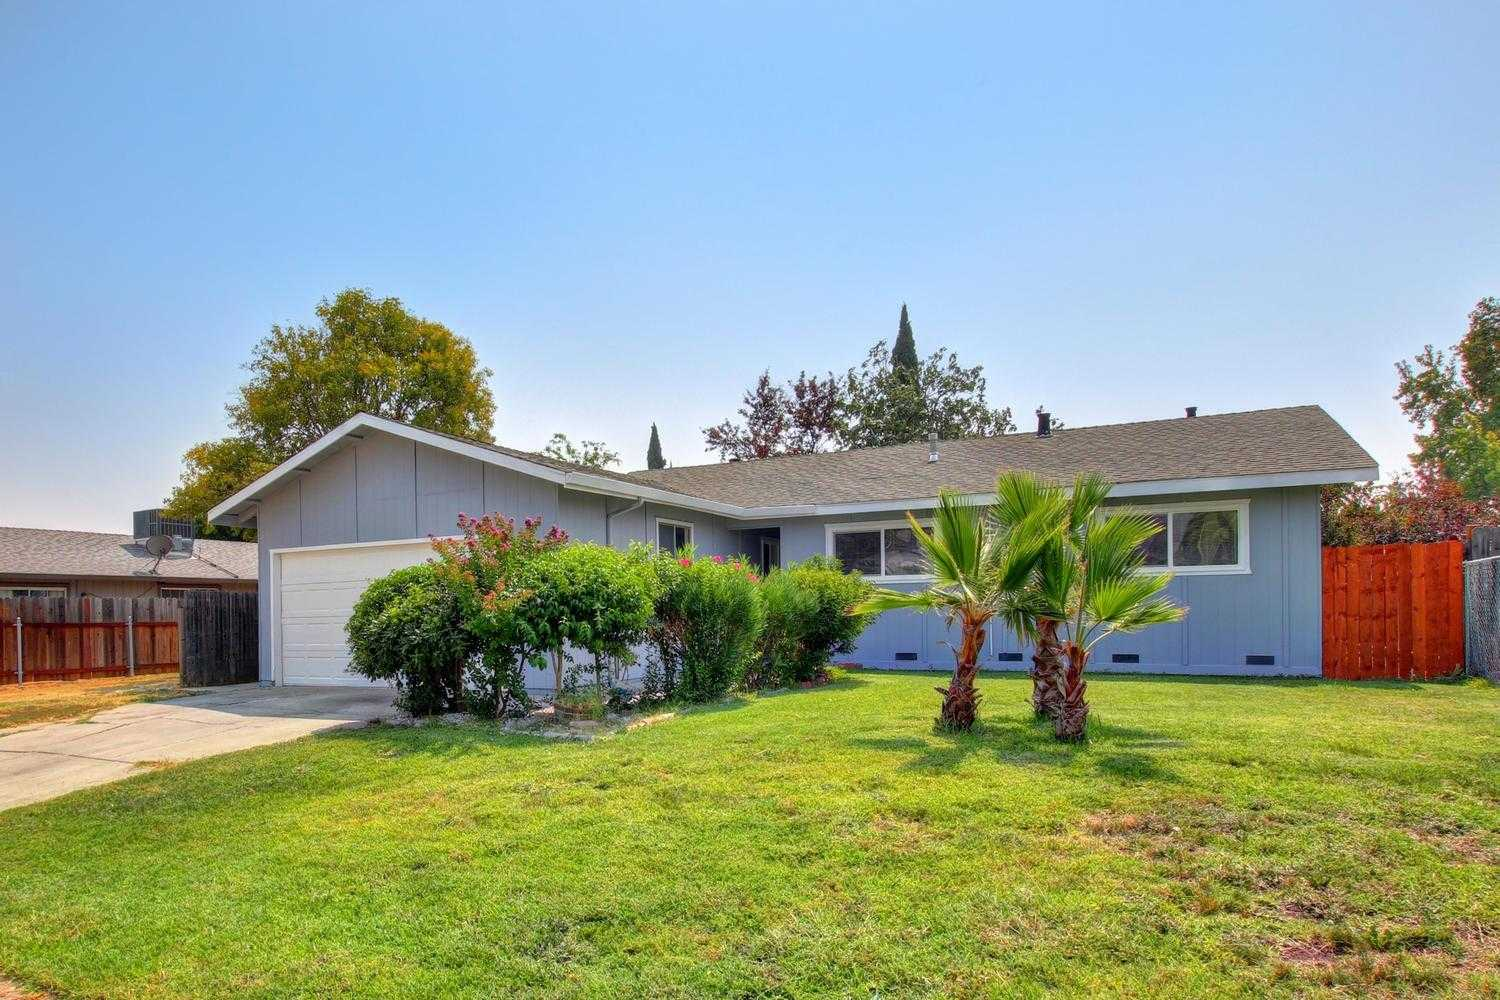 $329,900 - 4Br/2Ba -  for Sale in Meadow View Village 05, Sacramento